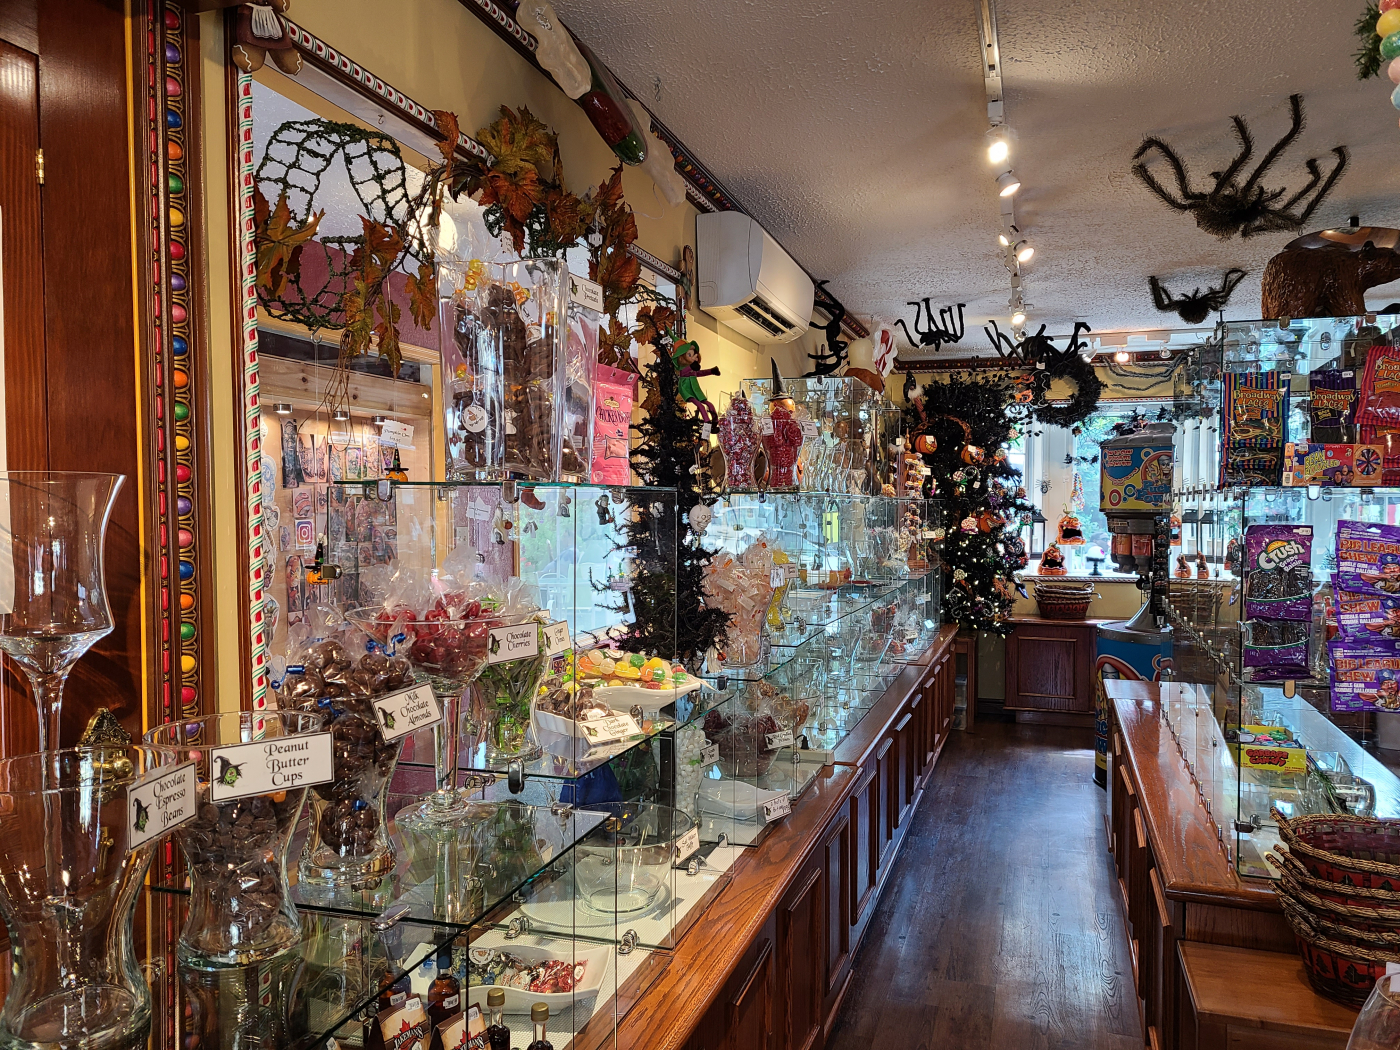 Hansel & Gretel's Candy Co. and Baby Bear's Ice Cream Shoppe is a business for sale in BC.